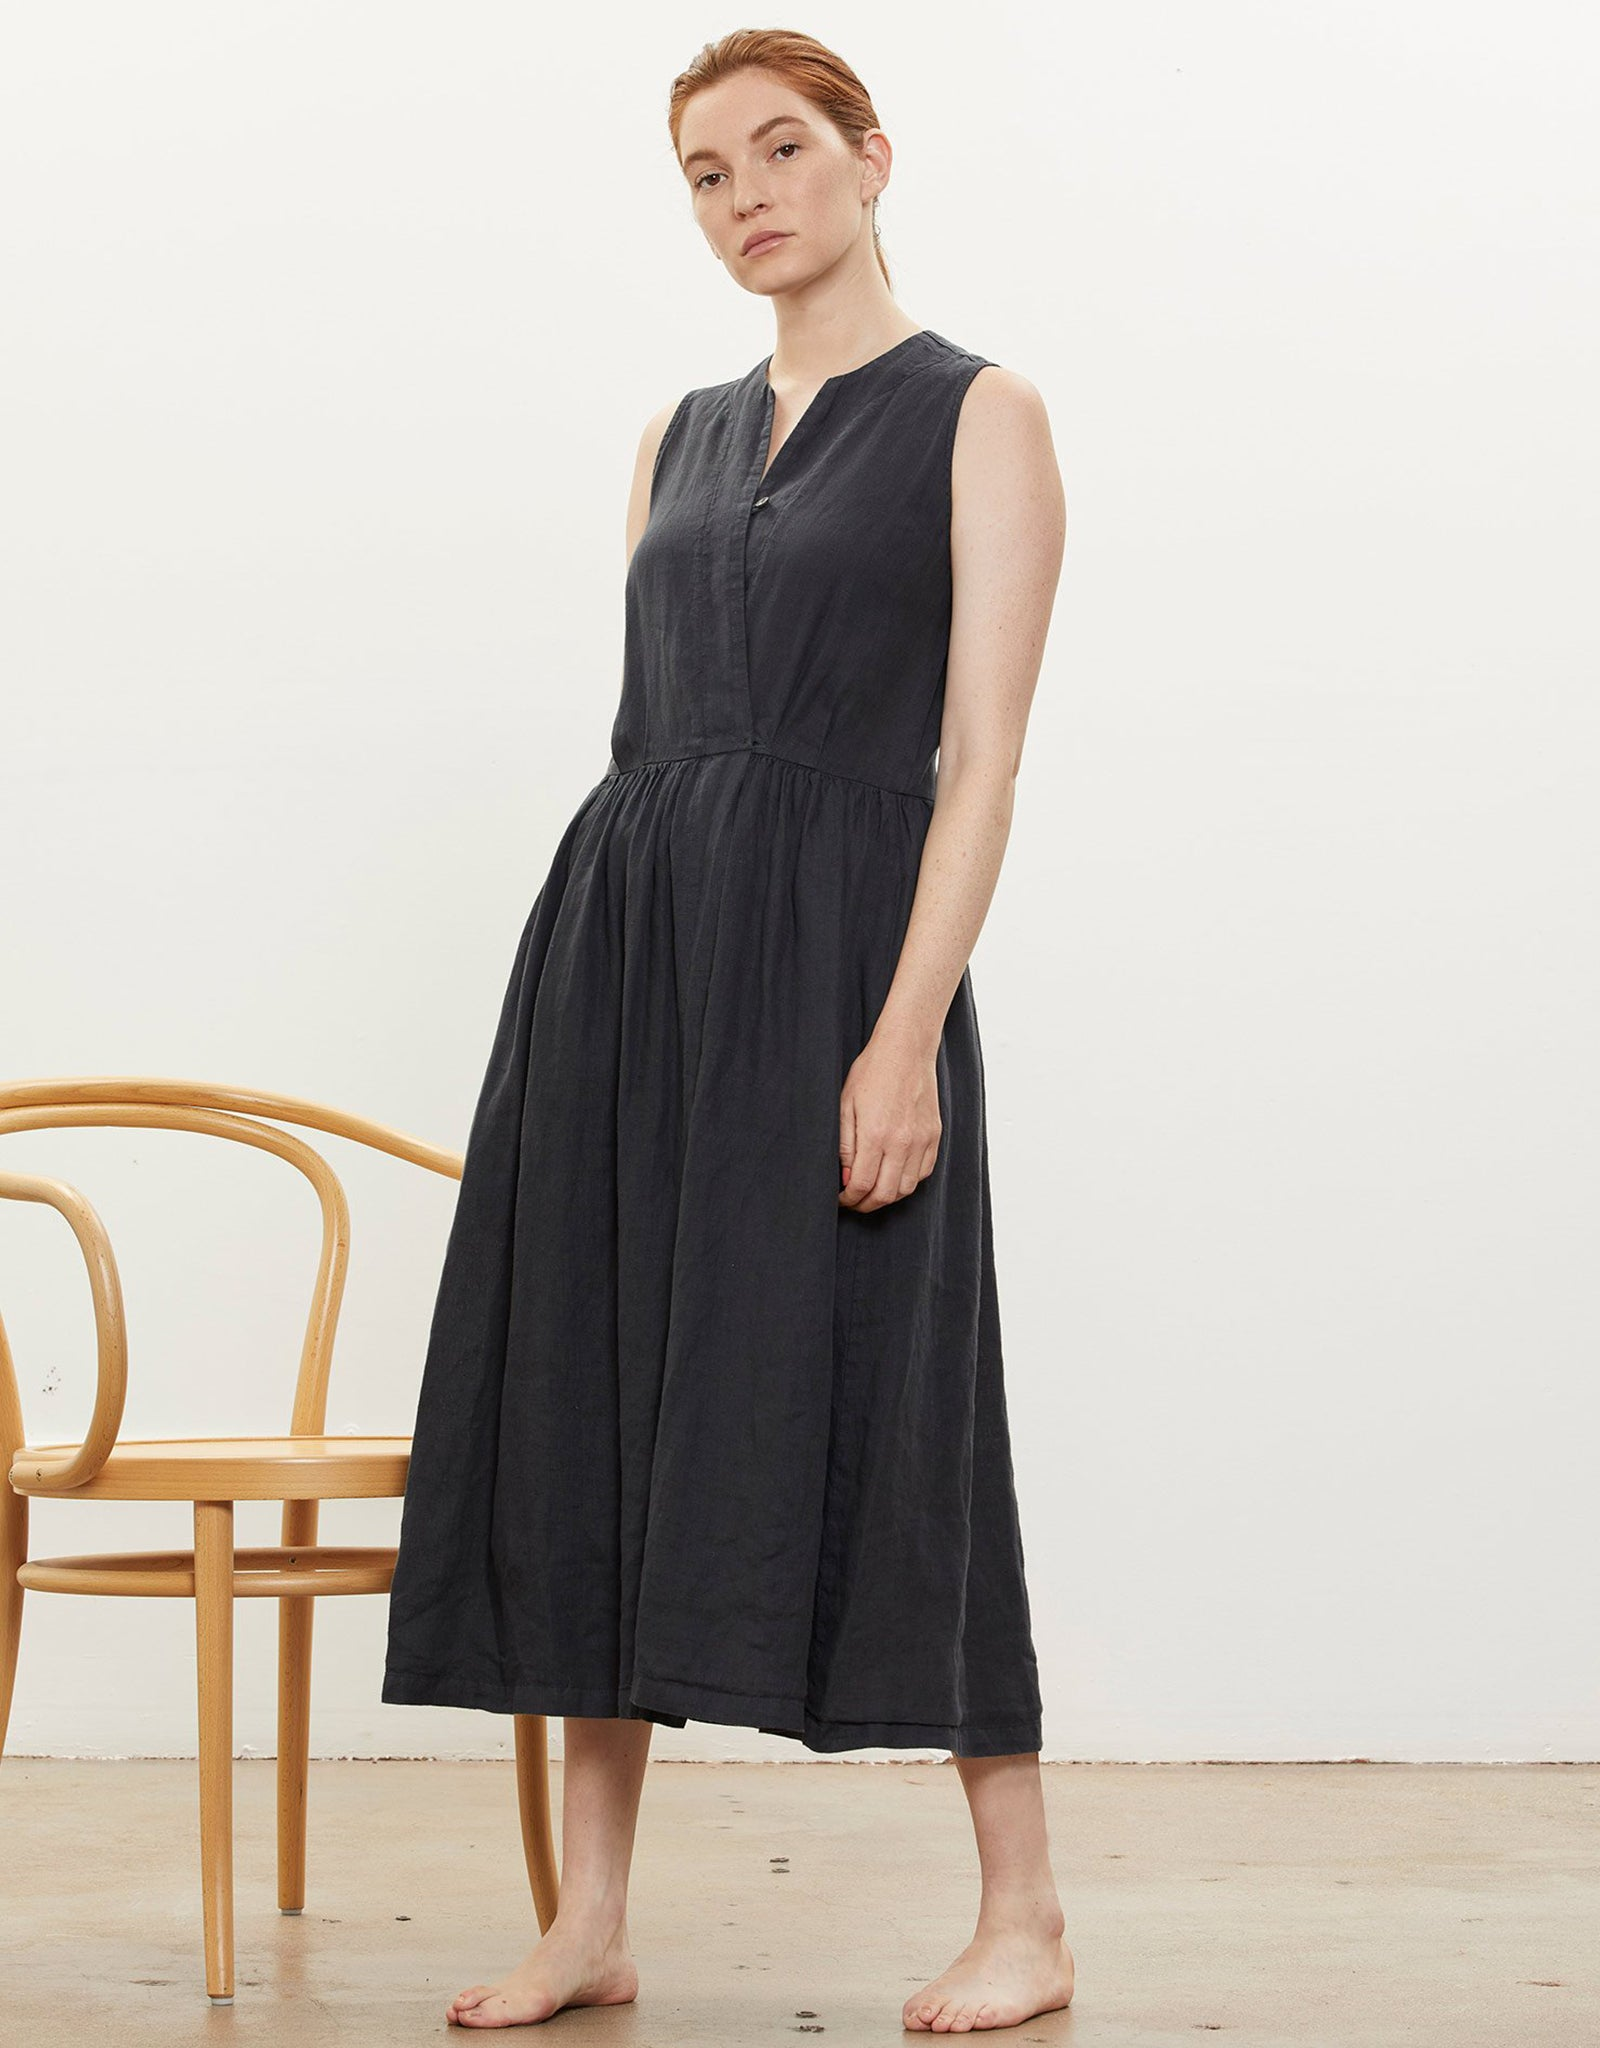 Model wears Black Crane Classy Tank Dress in Black. Available at FAWN Toronto.